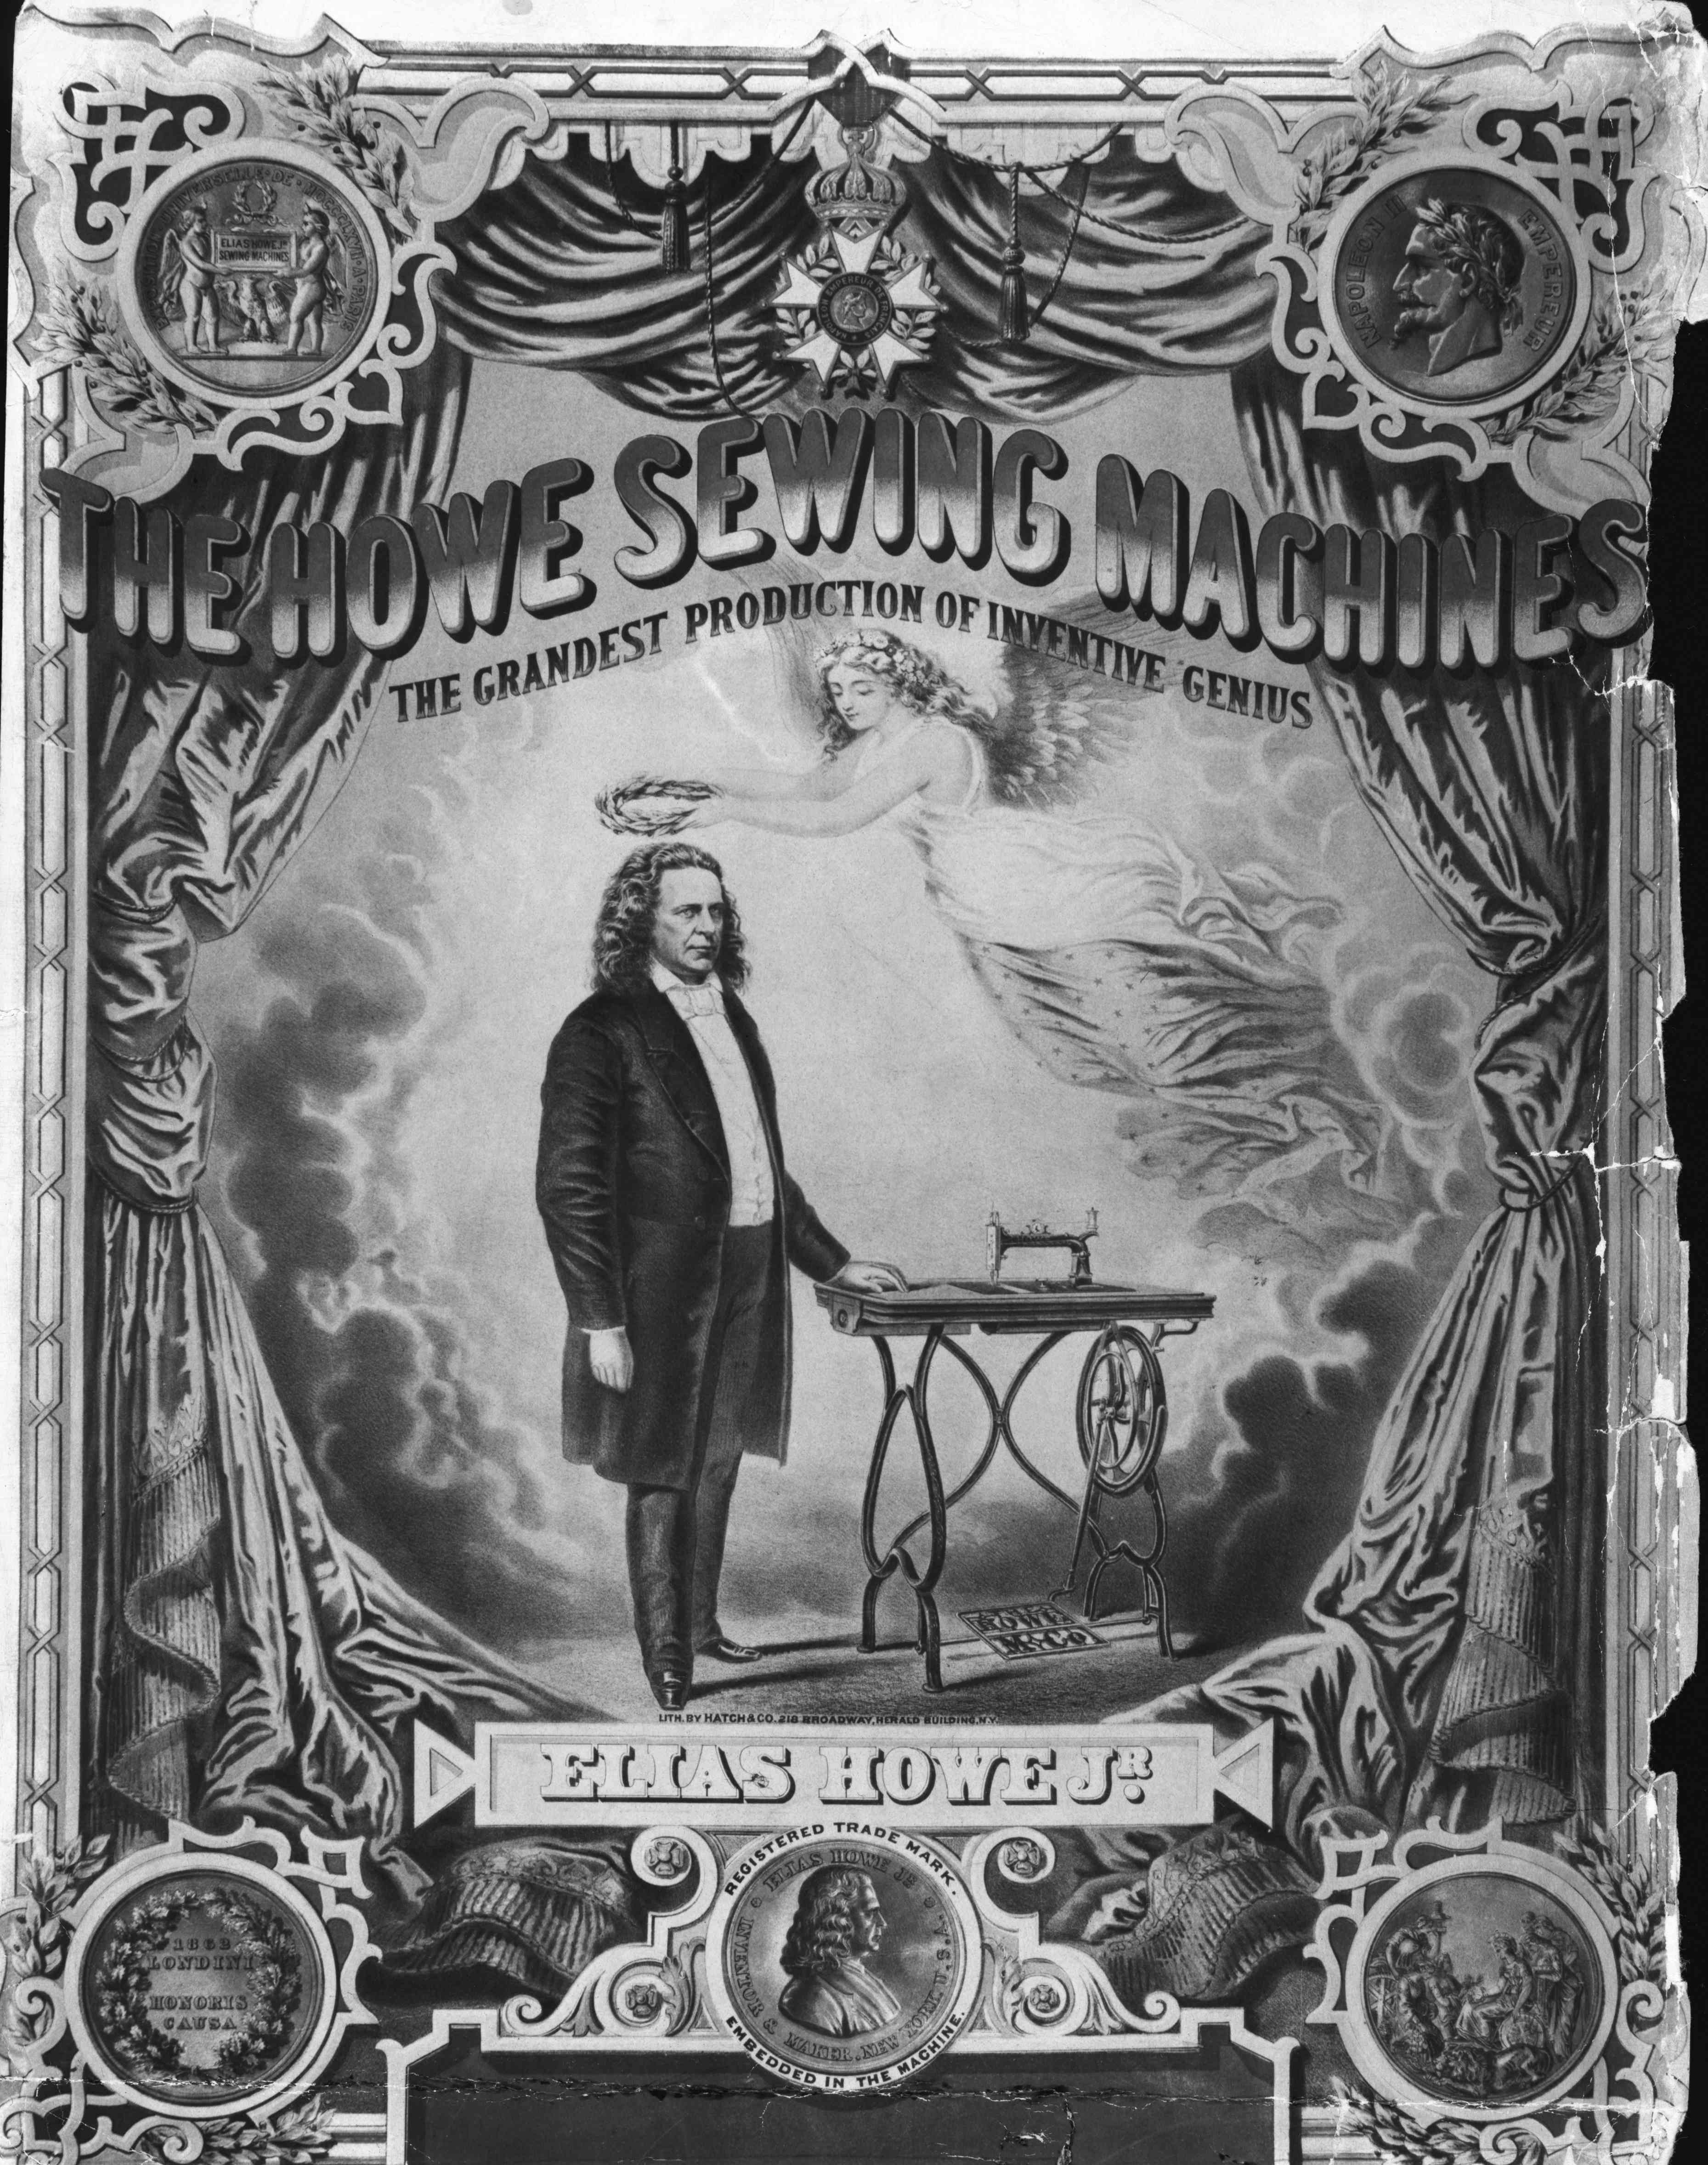 Poster for Elias Howe's Sewing Machine